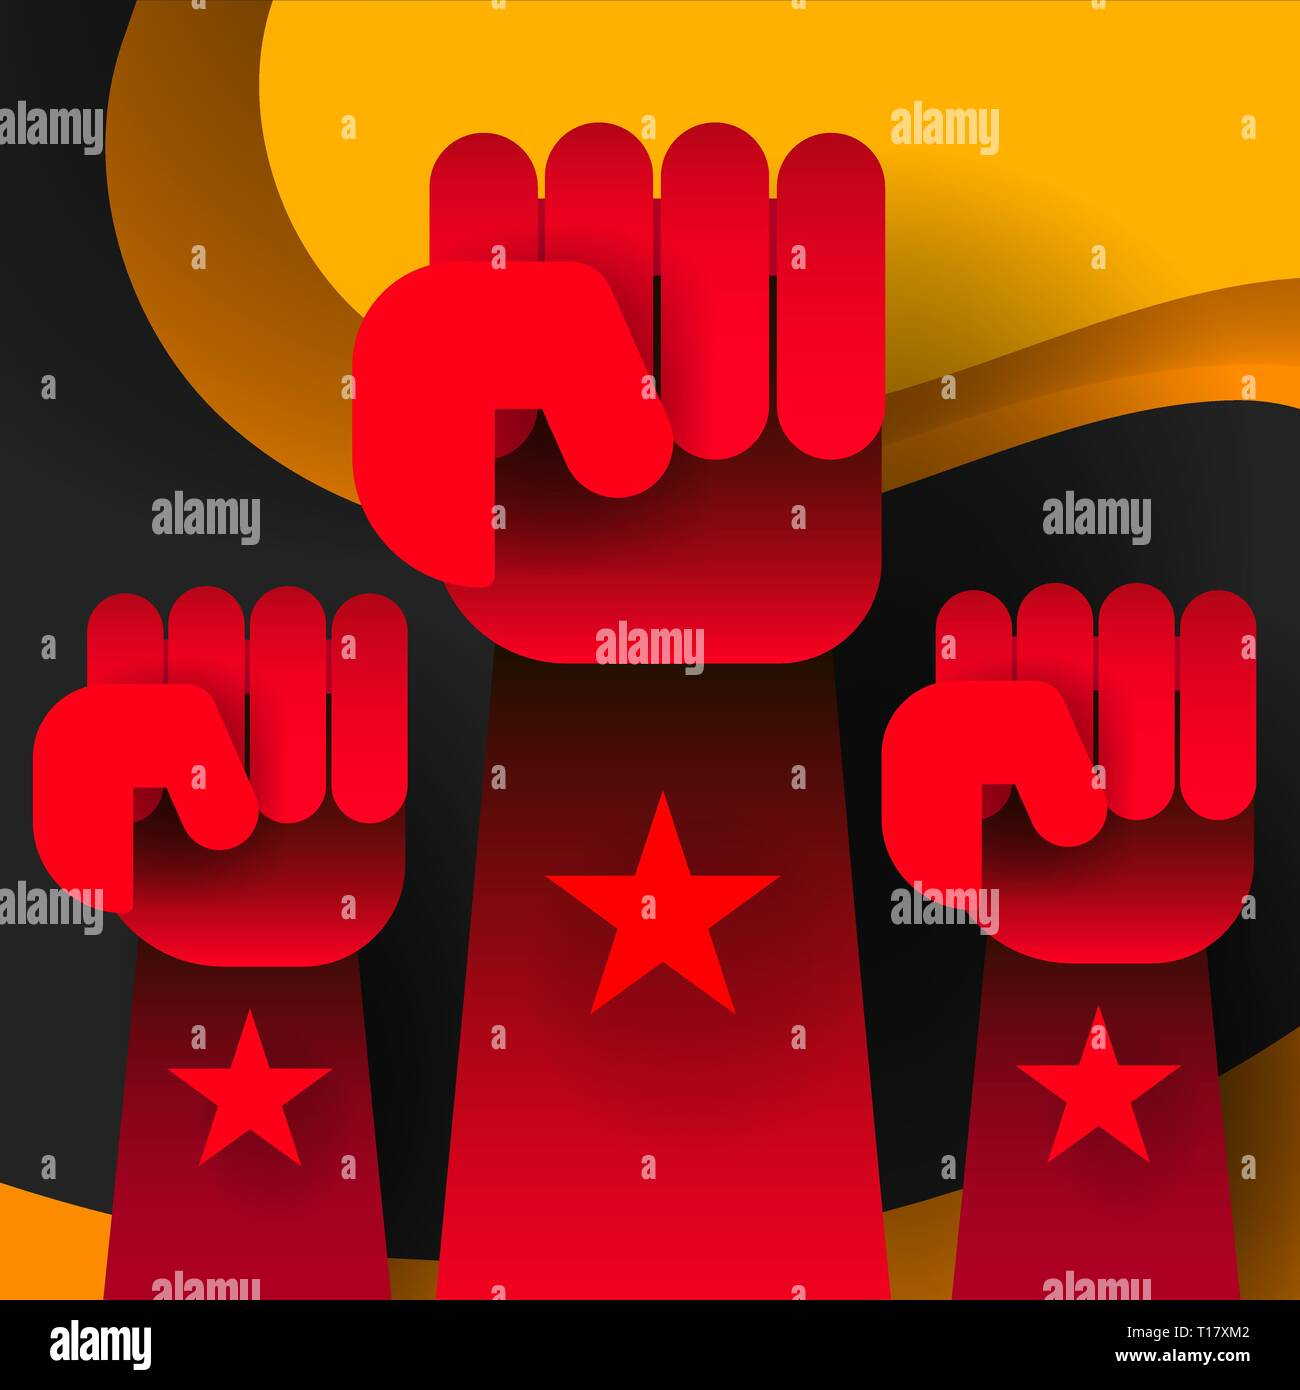 Revolution flat. Social network vector. White background. Revolution poster, fist hand. Flat cartoon style - Stock Vector